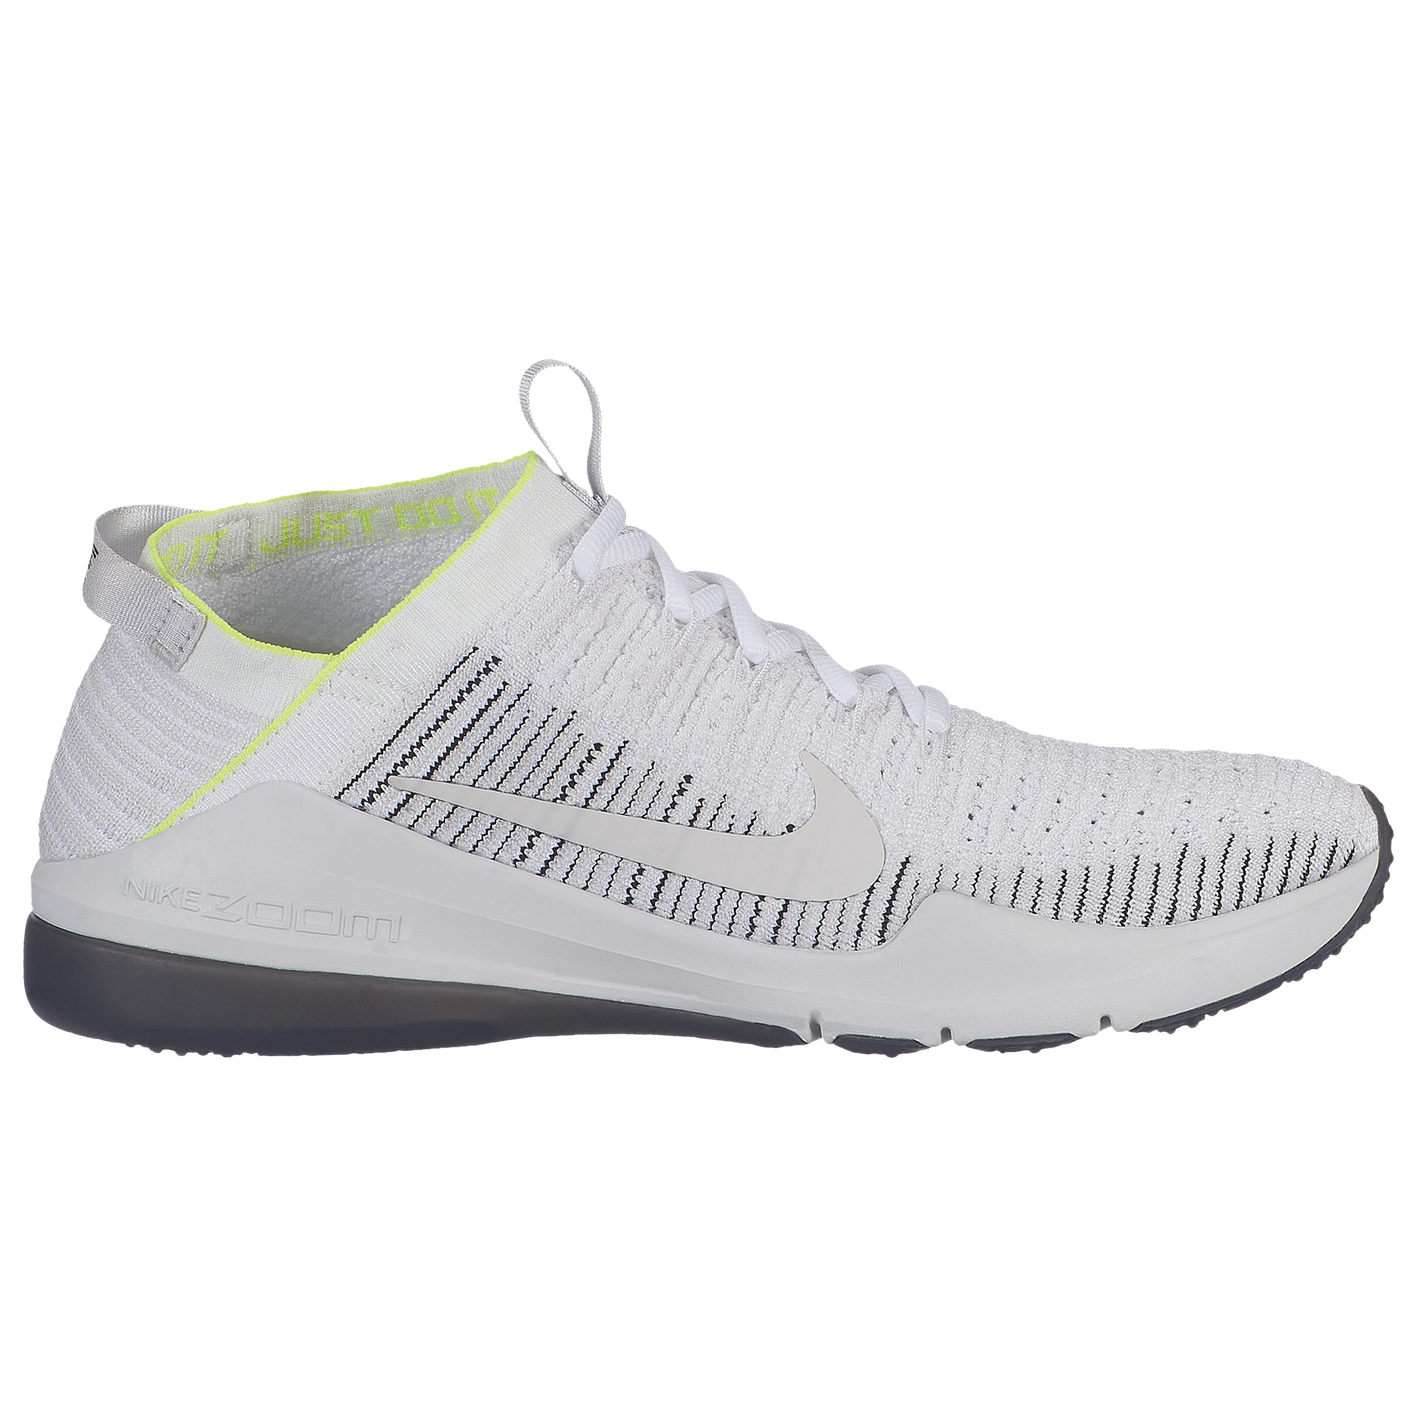 28e84cbb512 Nike Air Zoom Fearless Flyknit 2 - Women s - Training - Shoes ...